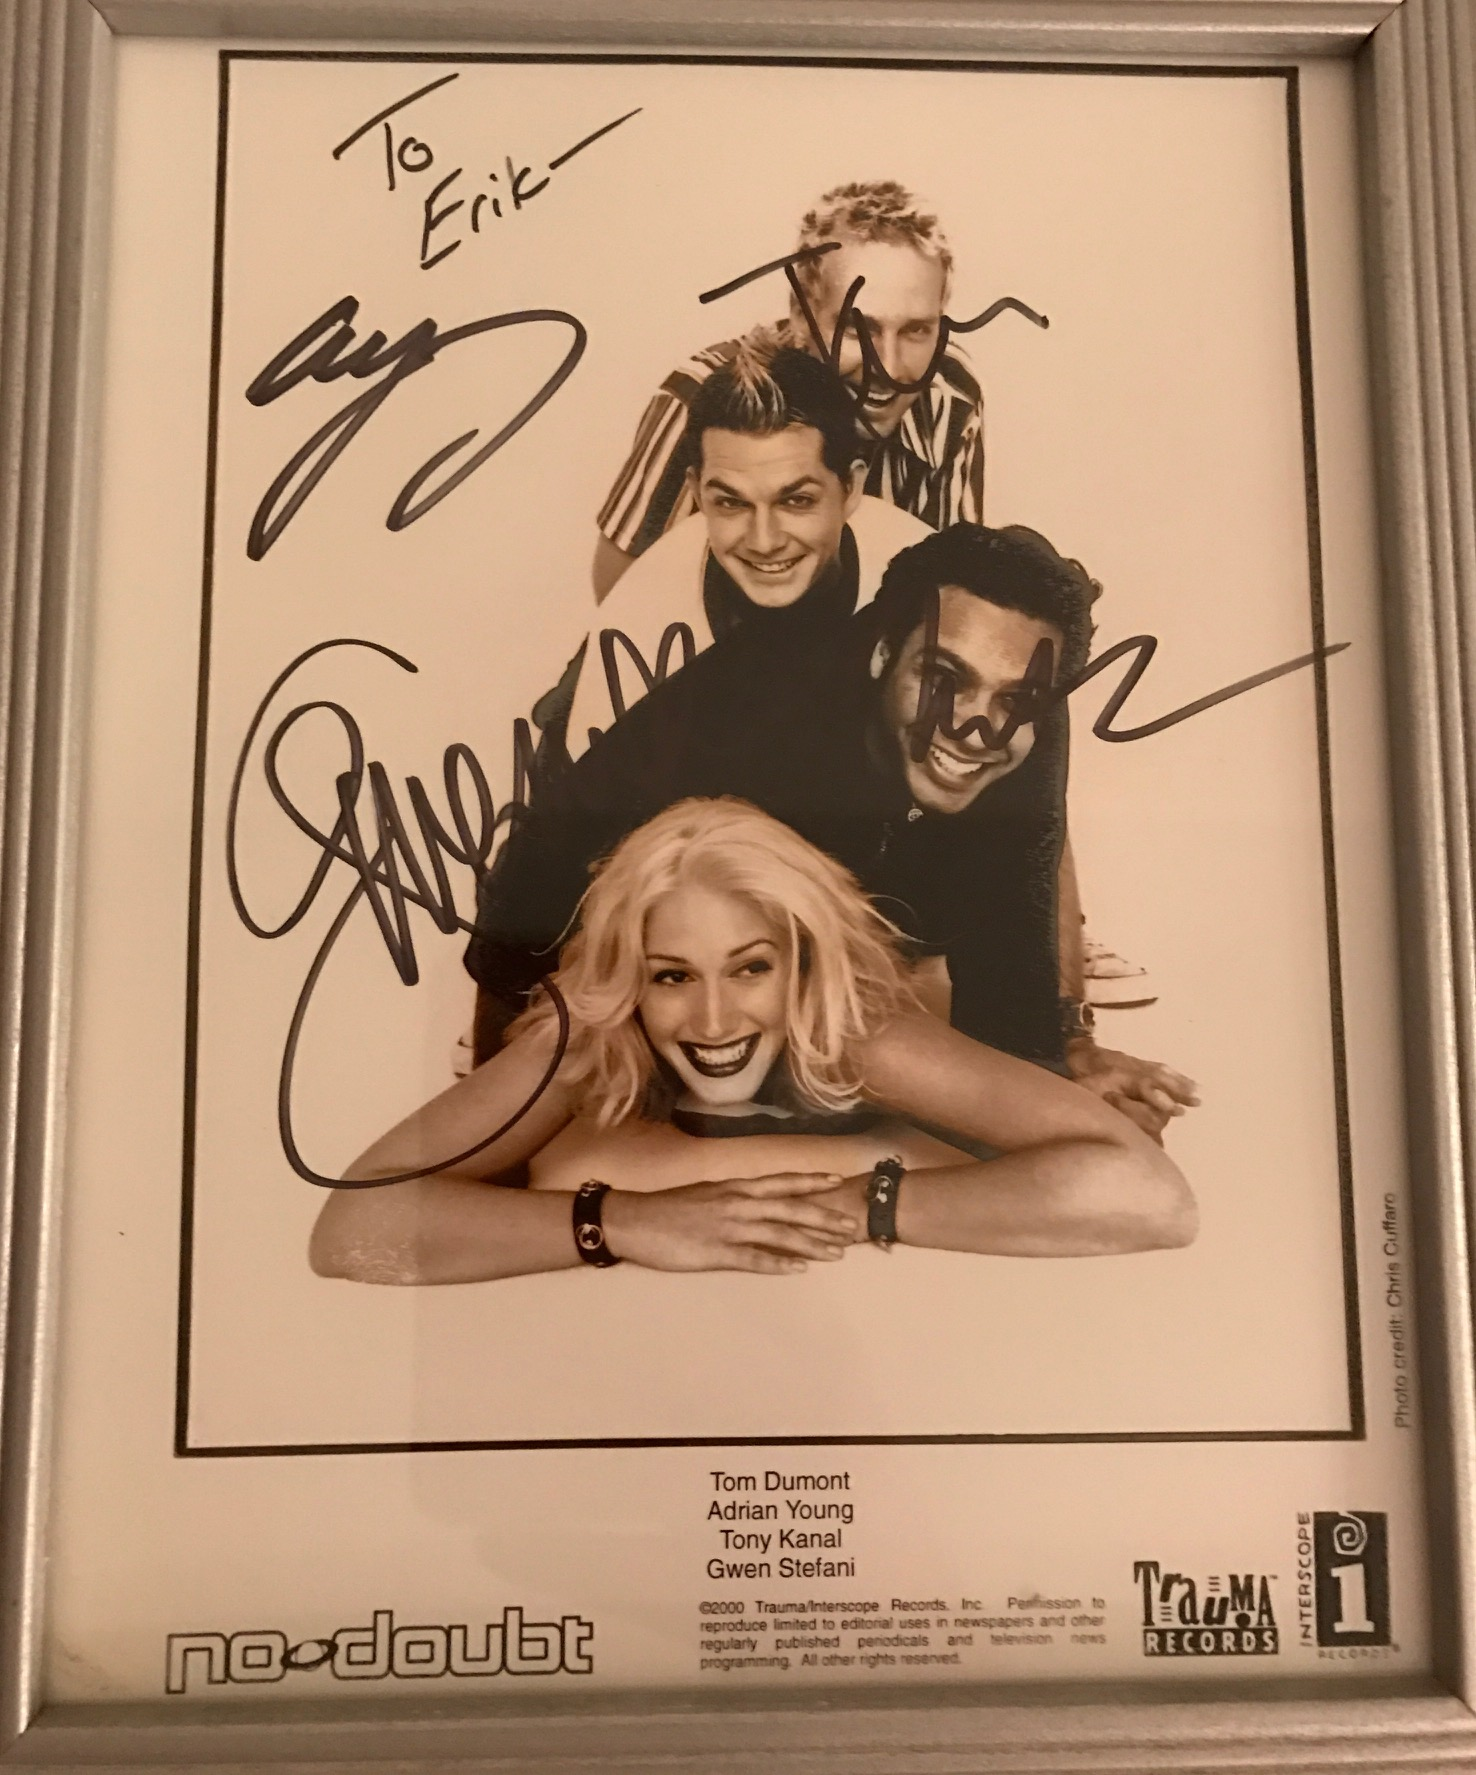 No Doubt photo signed.jpg